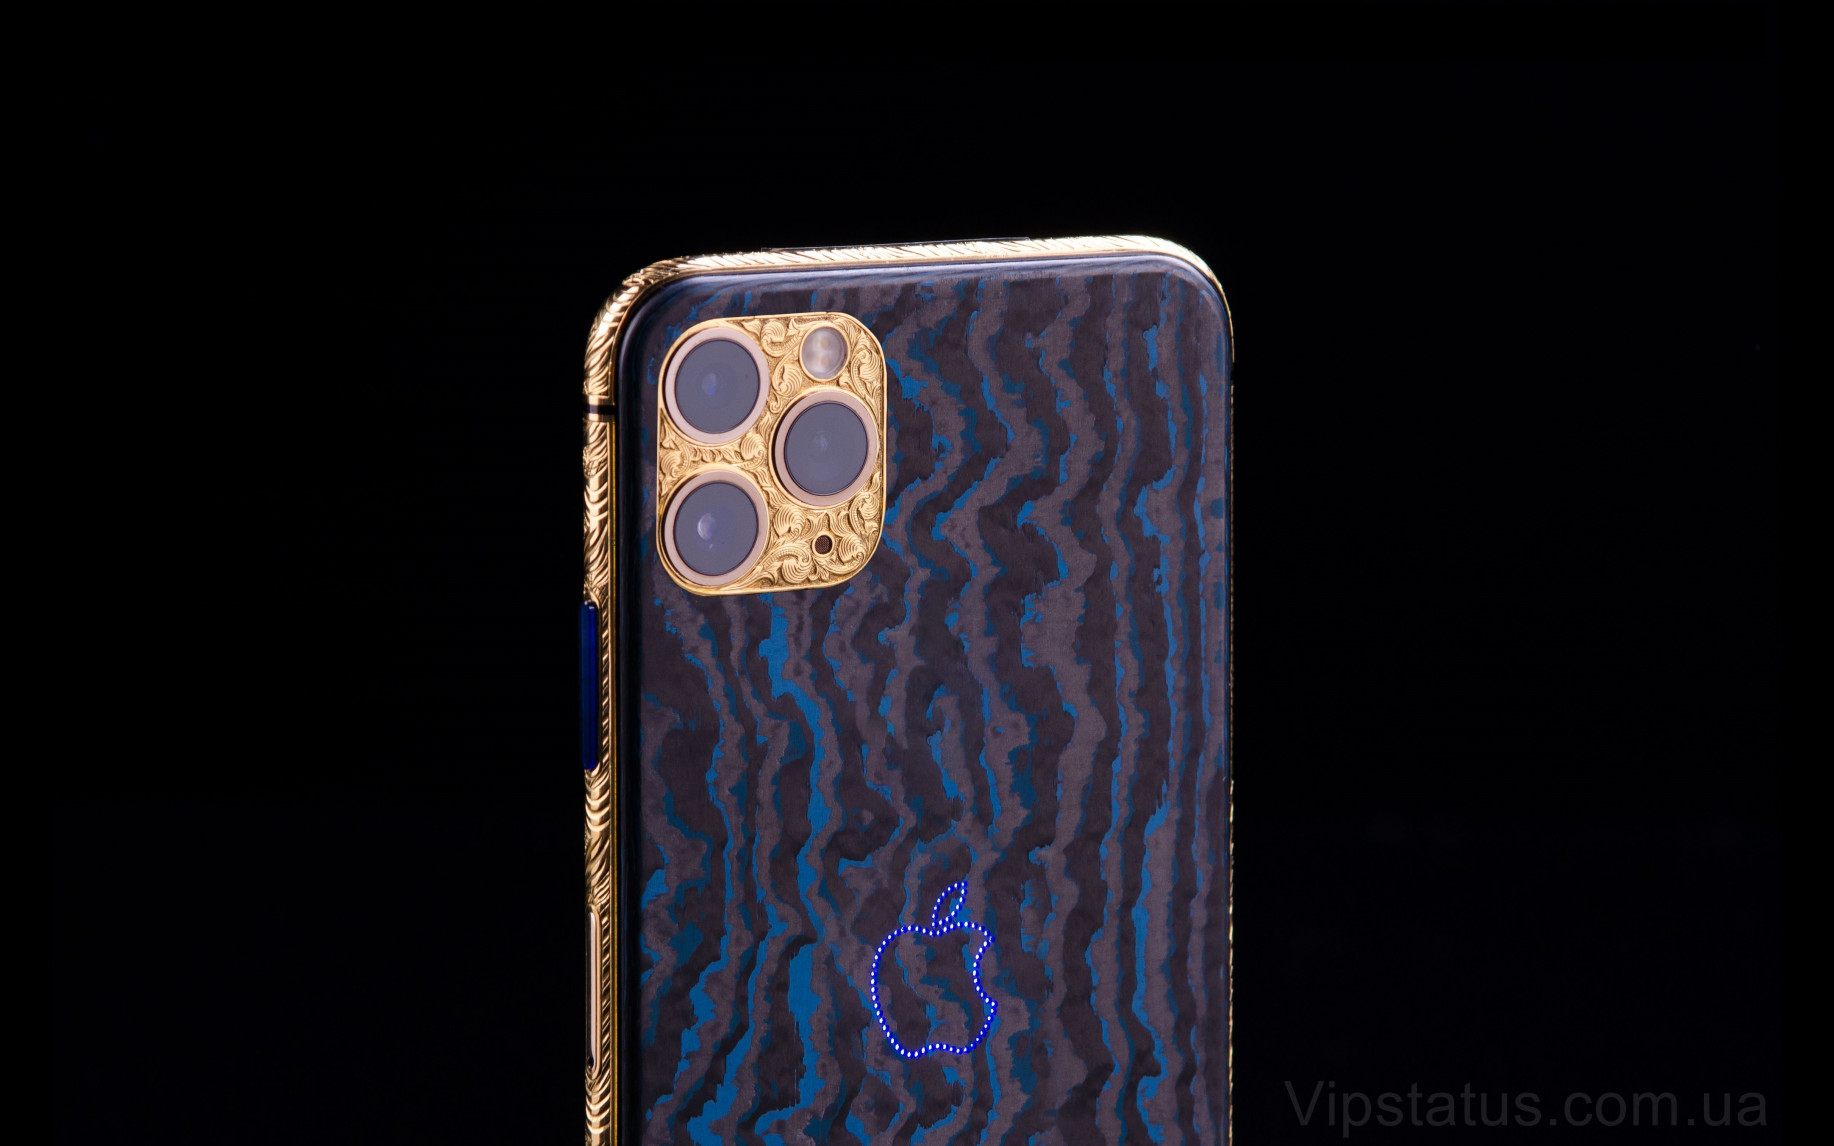 Elite Blue Dream IPHONE XS 512 GB Blue Dream IPHONE XS 512 GB image 2